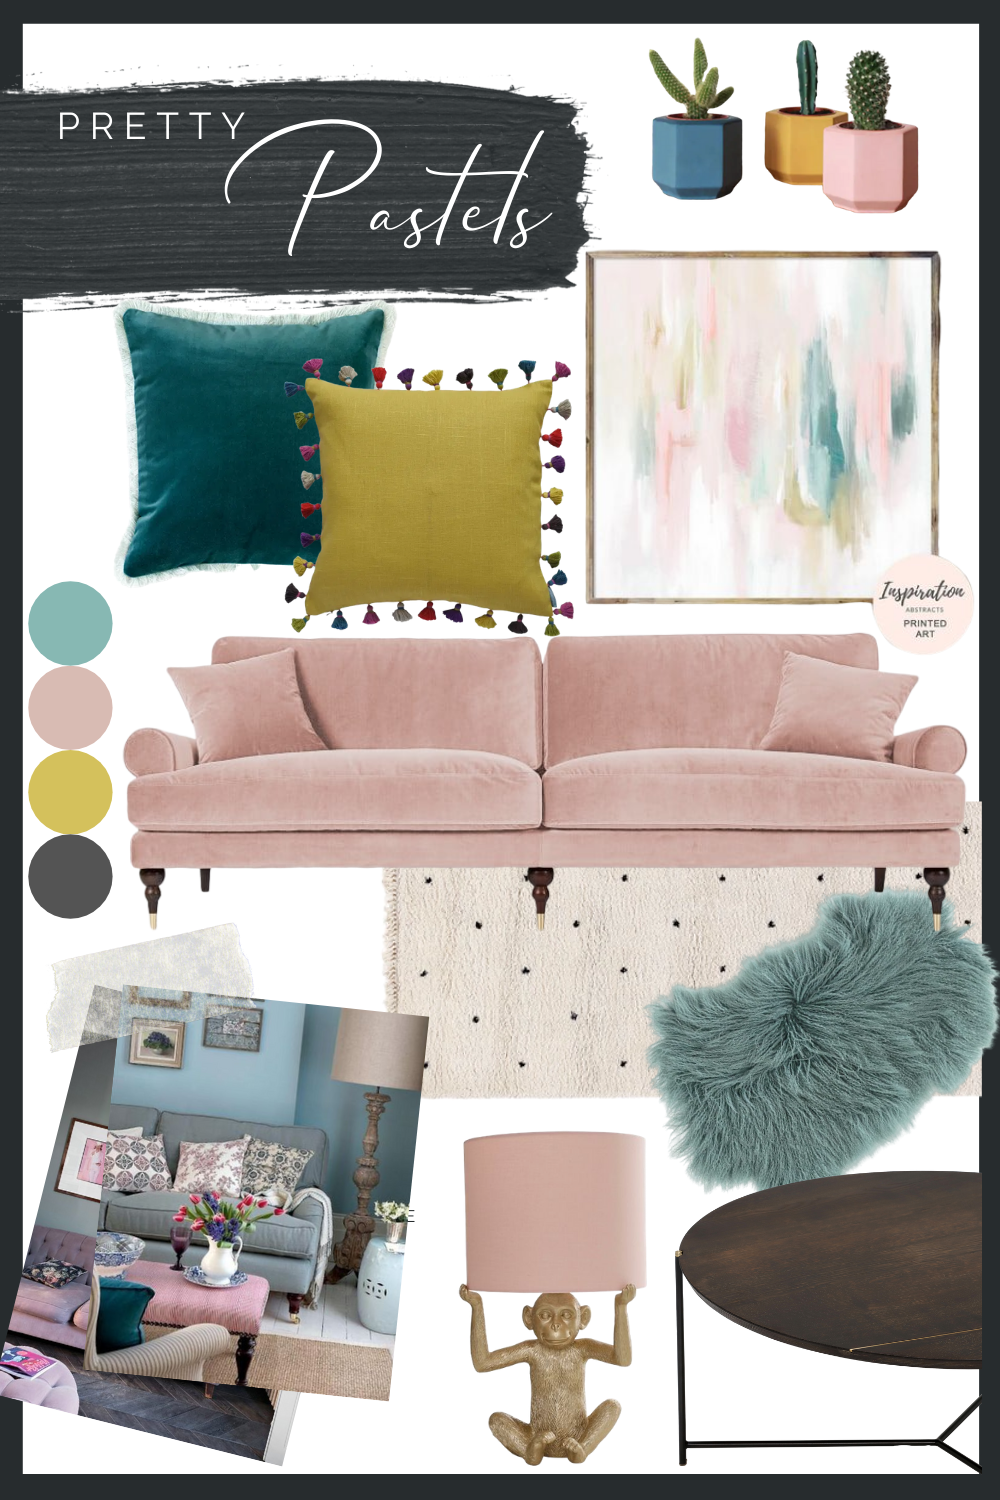 Pastel Living Room Interior Design Concept Moodboard In 2020 Pink Living Room Decor Blue And Pink Living Room Yellow Bedroom Decor #pink #and #teal #living #room